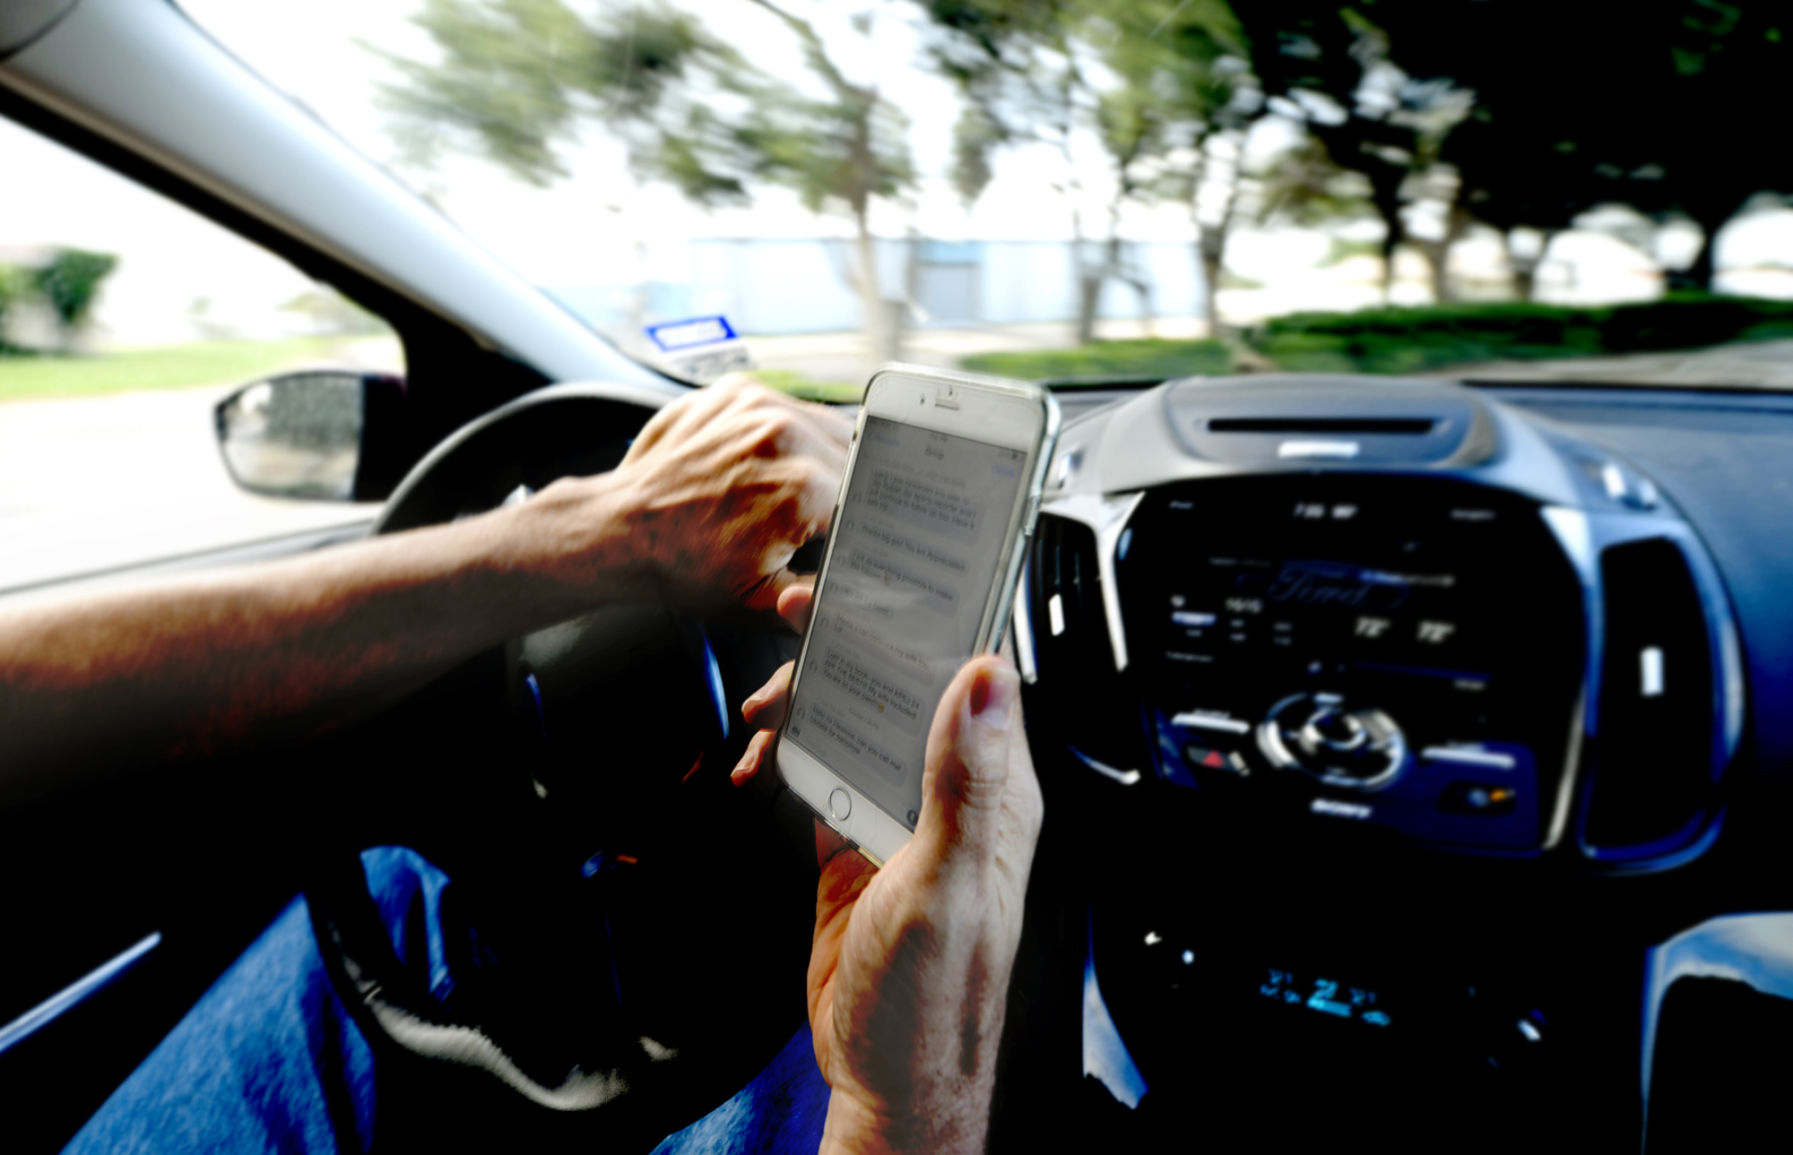 Texting while driving ban remains an uphill climb in Texas Midland